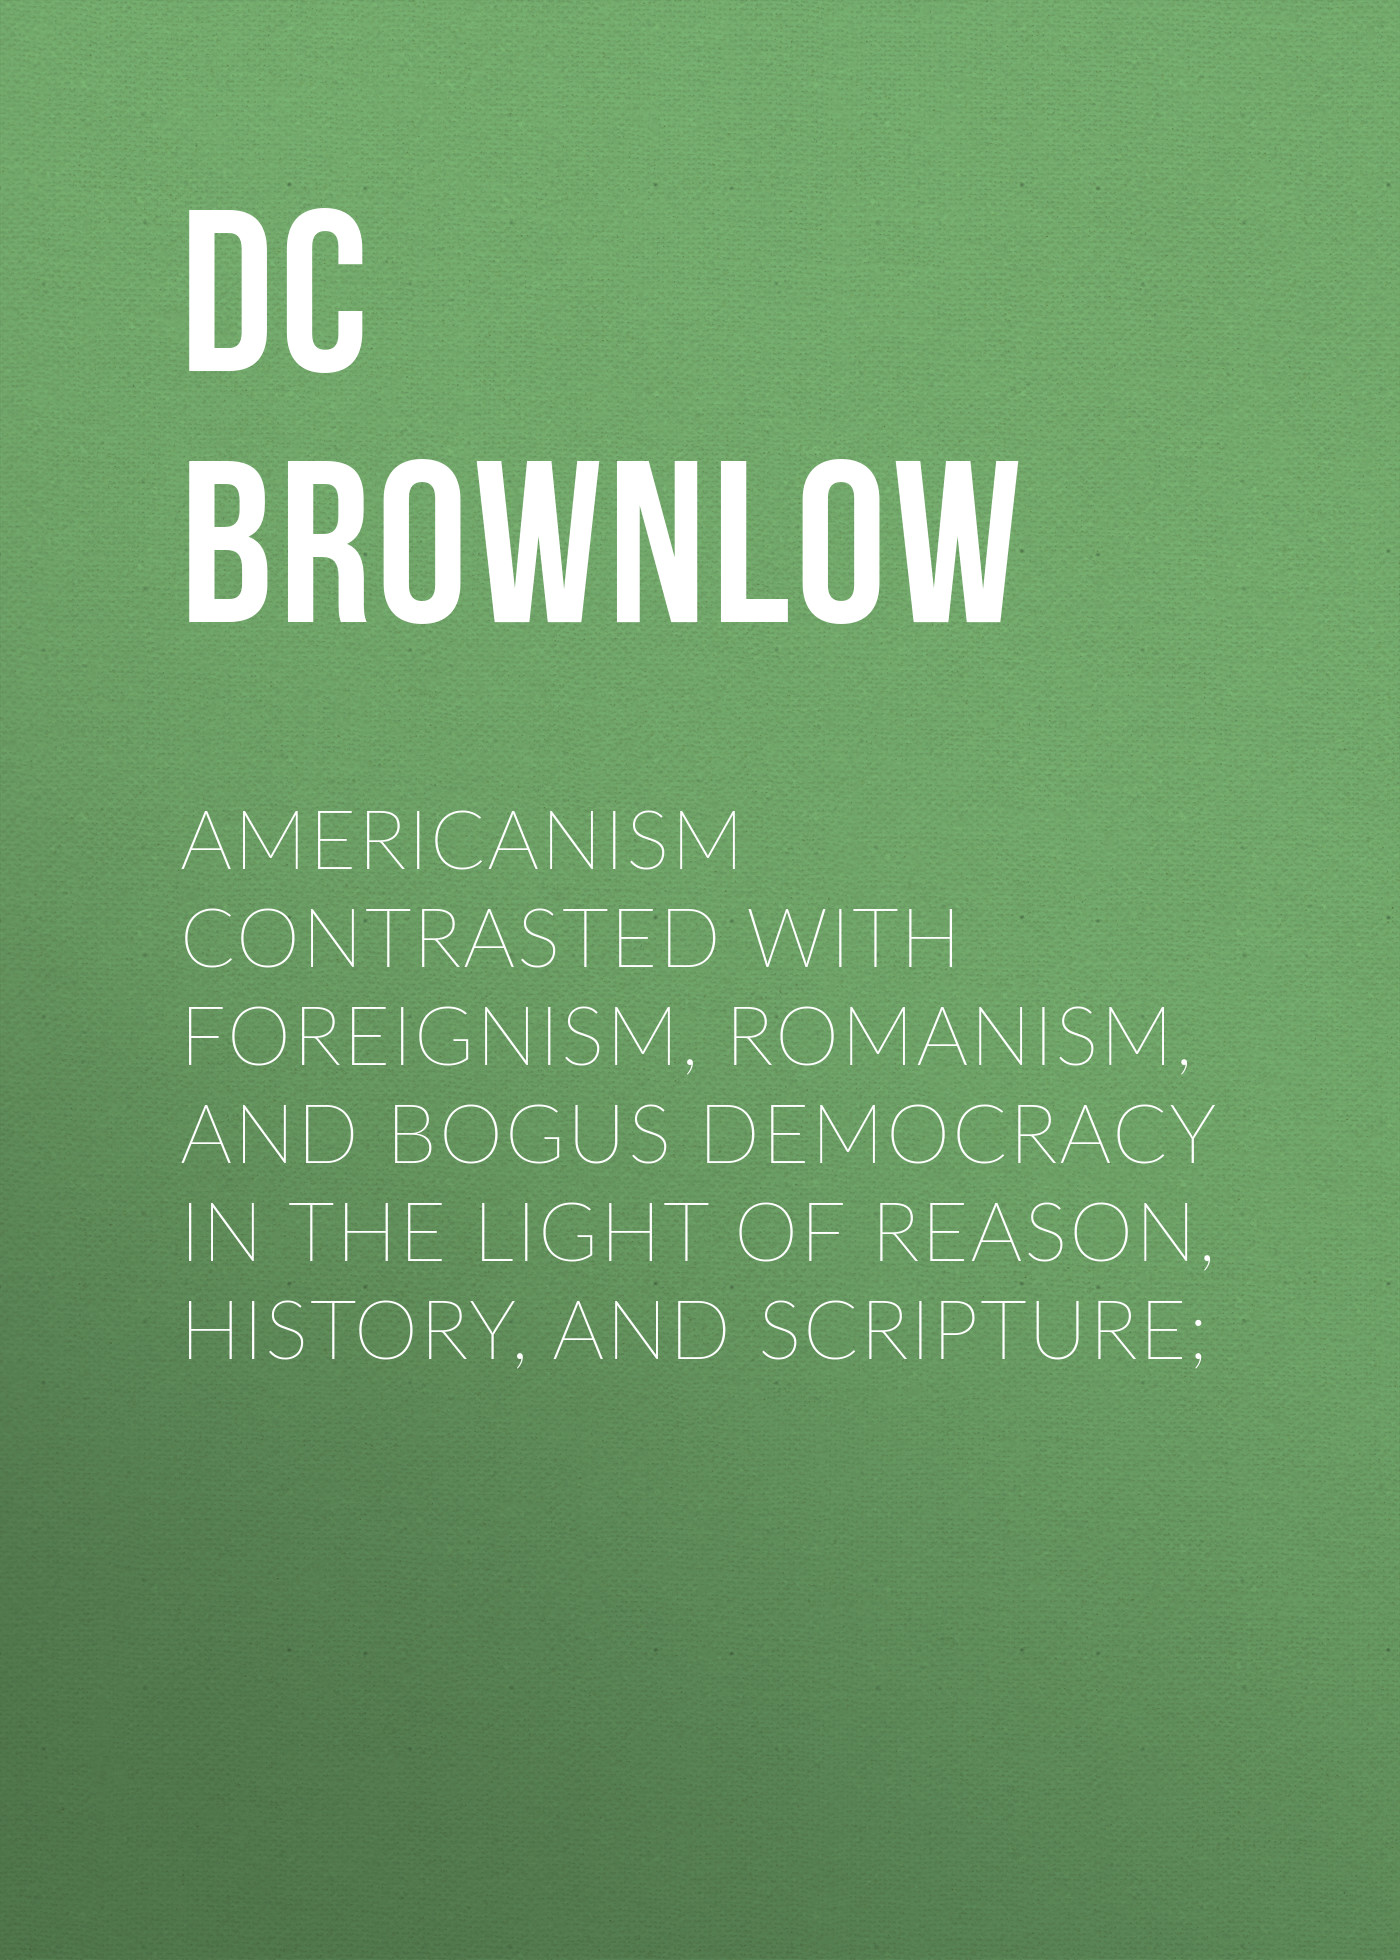 Brownlow William Gannaway Americanism Contrasted with Foreignism, Romanism, and Bogus Democracy in the Light of Reason, History, and Scripture; deliberation democracy and civic forums